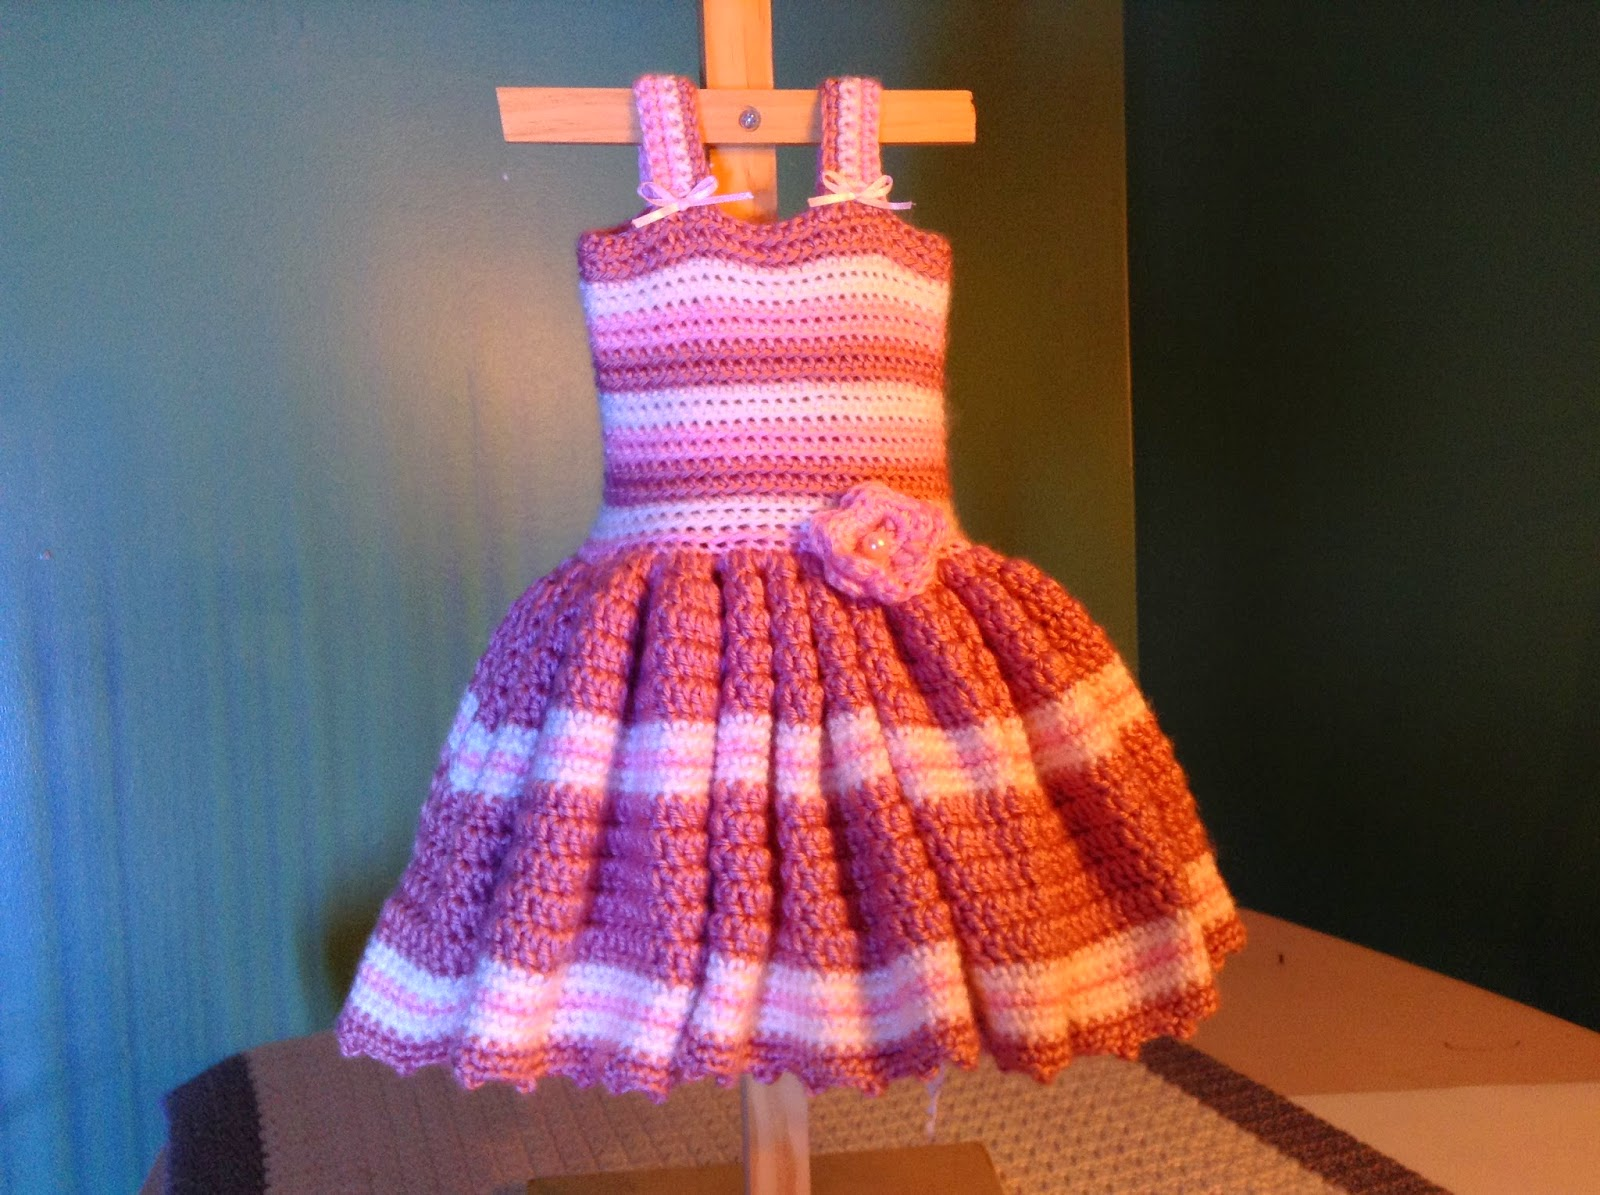 ... Baby Crochet Dress Patterns - Inspiration and Ideas: Free Patterns